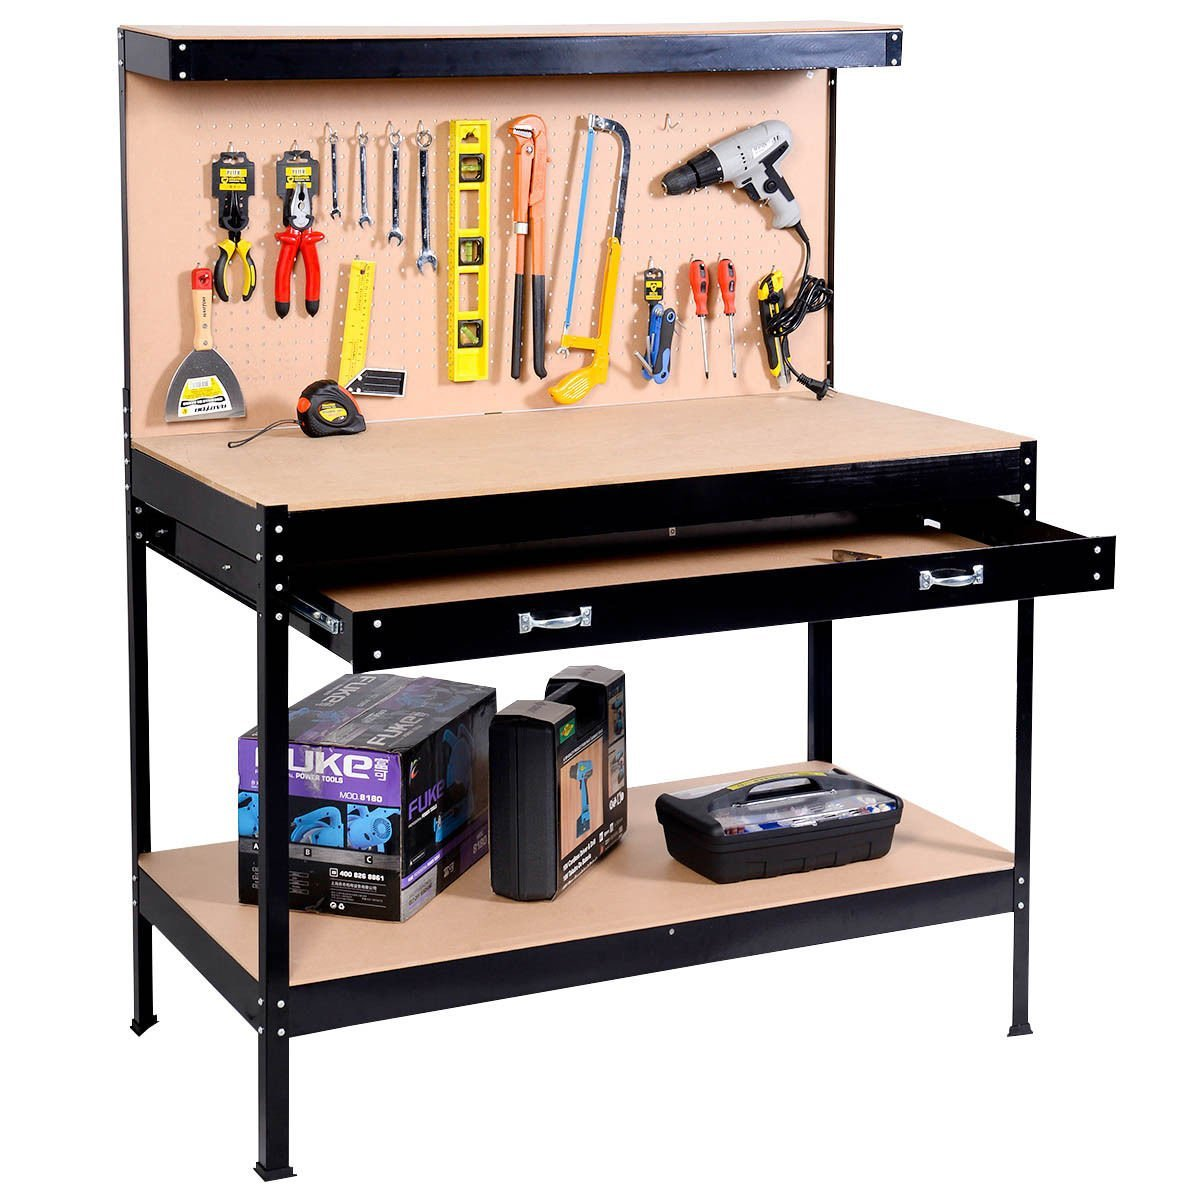 Work Bench Tool Storage Steel Frame Tool Workshop Table W/ Drawers and Peg Boar ..(from#_youidea; TRYK100391470212389